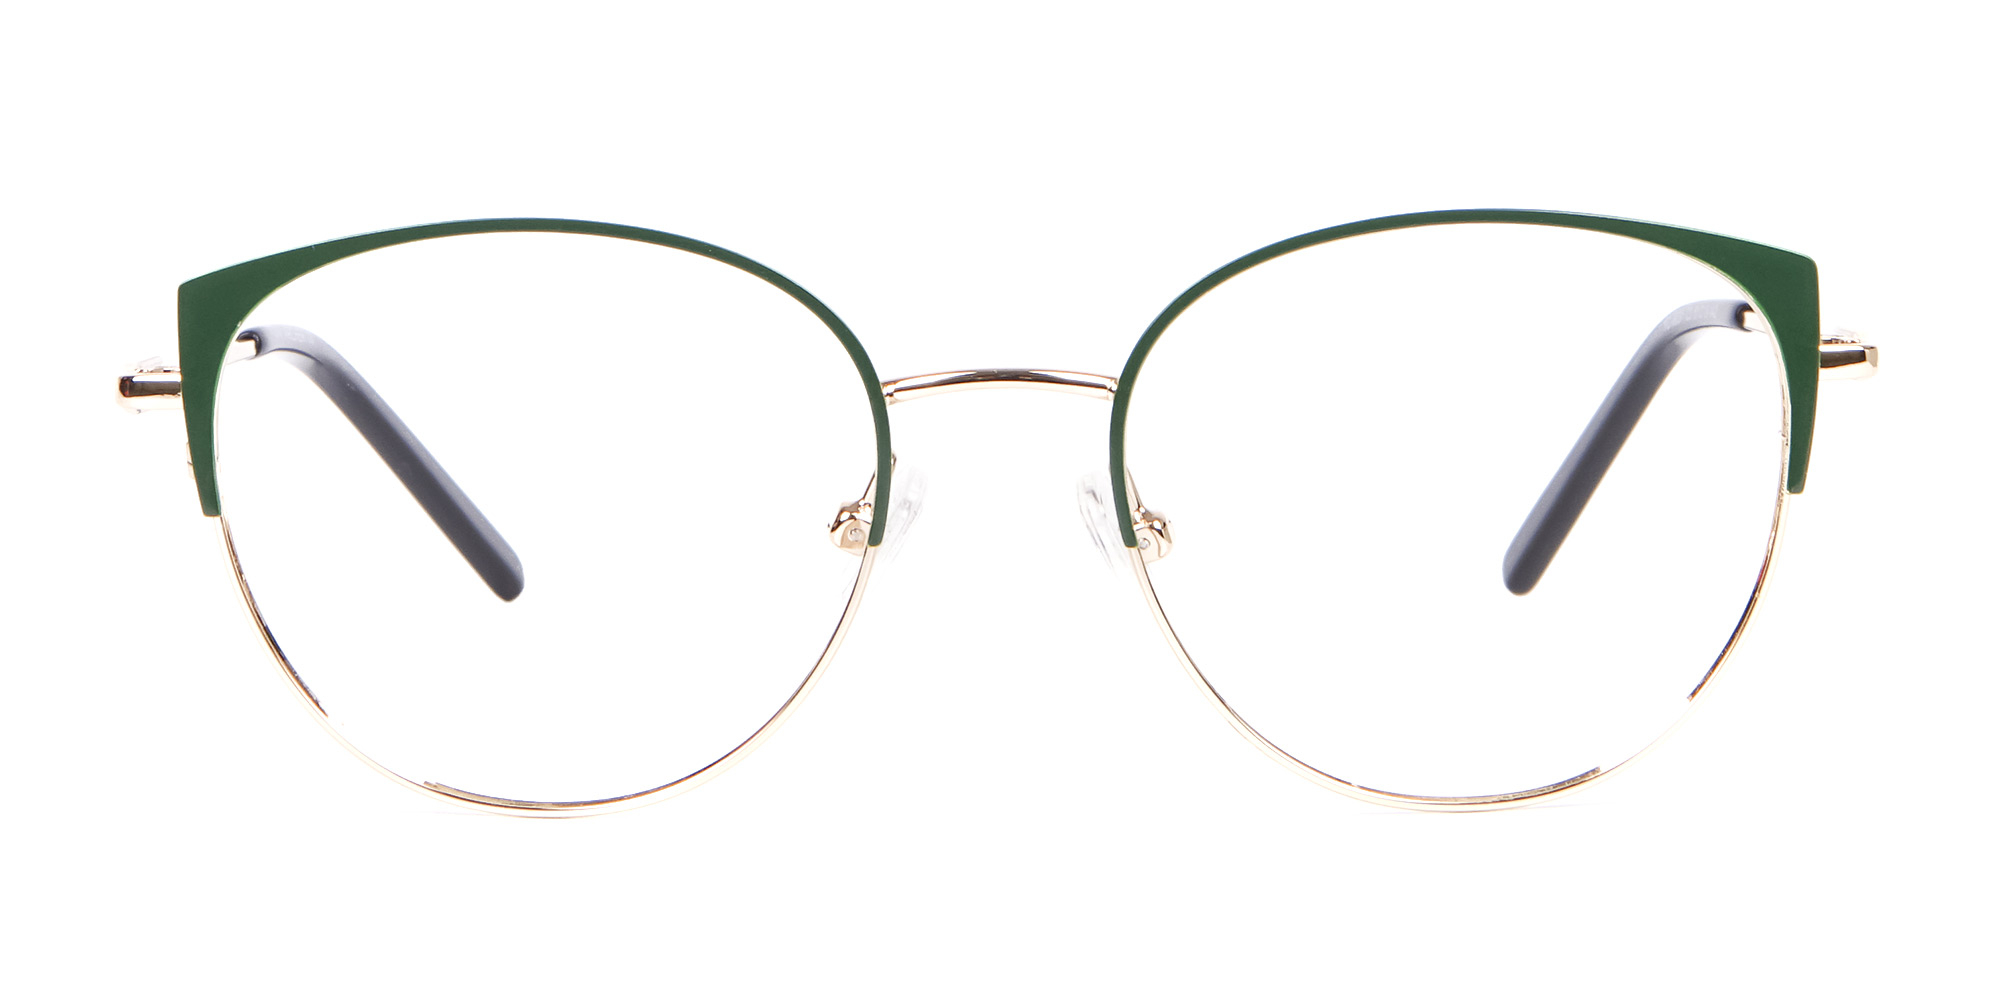 Gold and Hunter Green Metal Glasses in Round 2020 eyewear trends